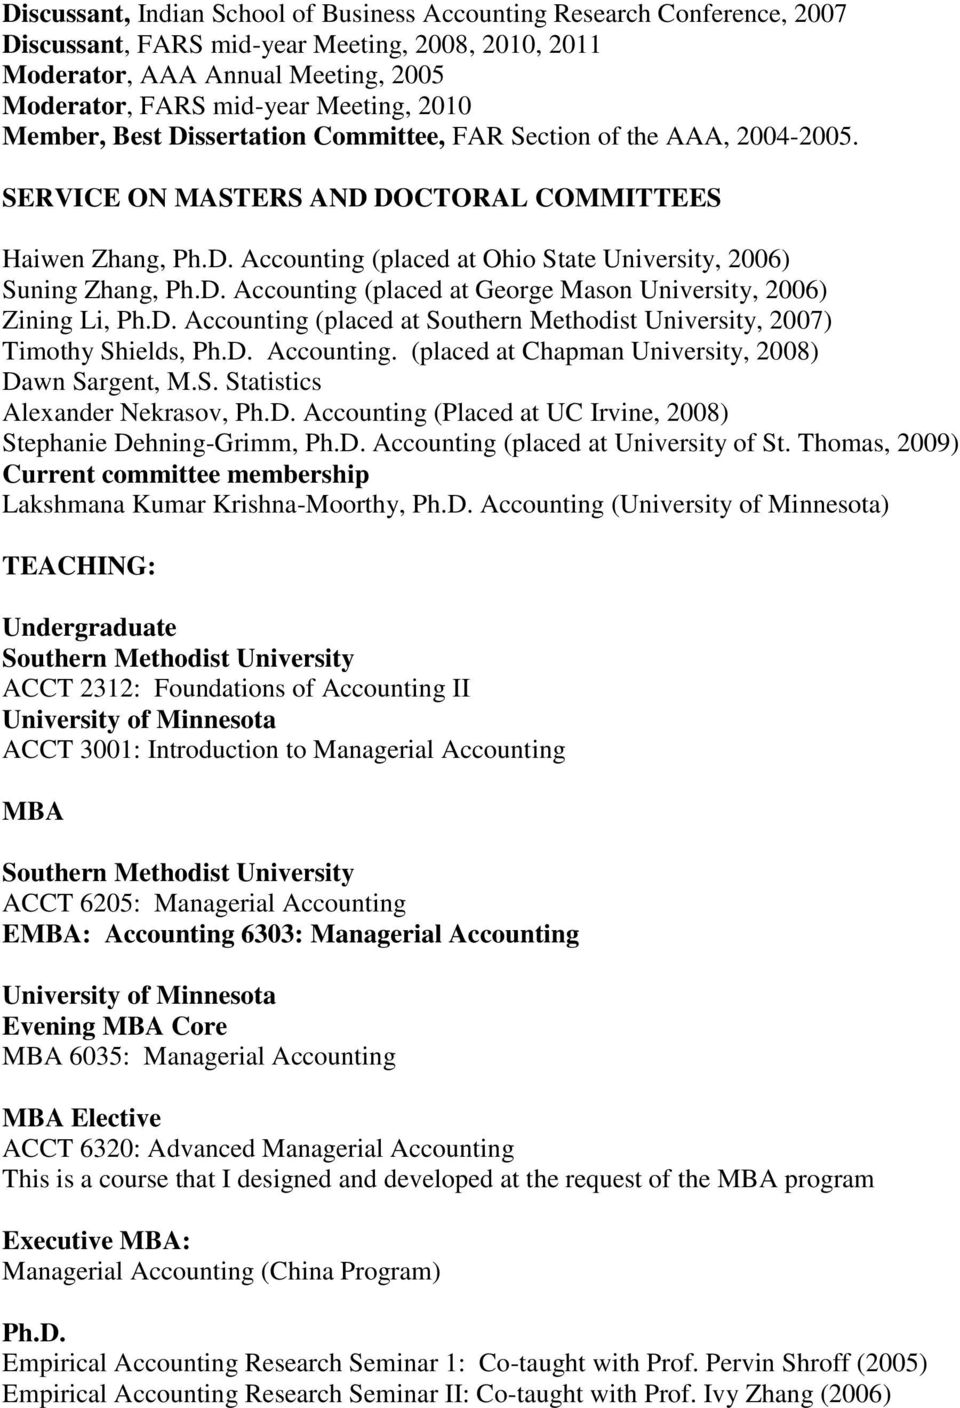 D. Accounting (placed at George Mason University, 2006) Zining Li, Ph.D. Accounting (placed at, 2007) Timothy Shields, Ph.D. Accounting. (placed at Chapman University, 2008) Dawn Sargent, M.S. Statistics Alexander Nekrasov, Ph.